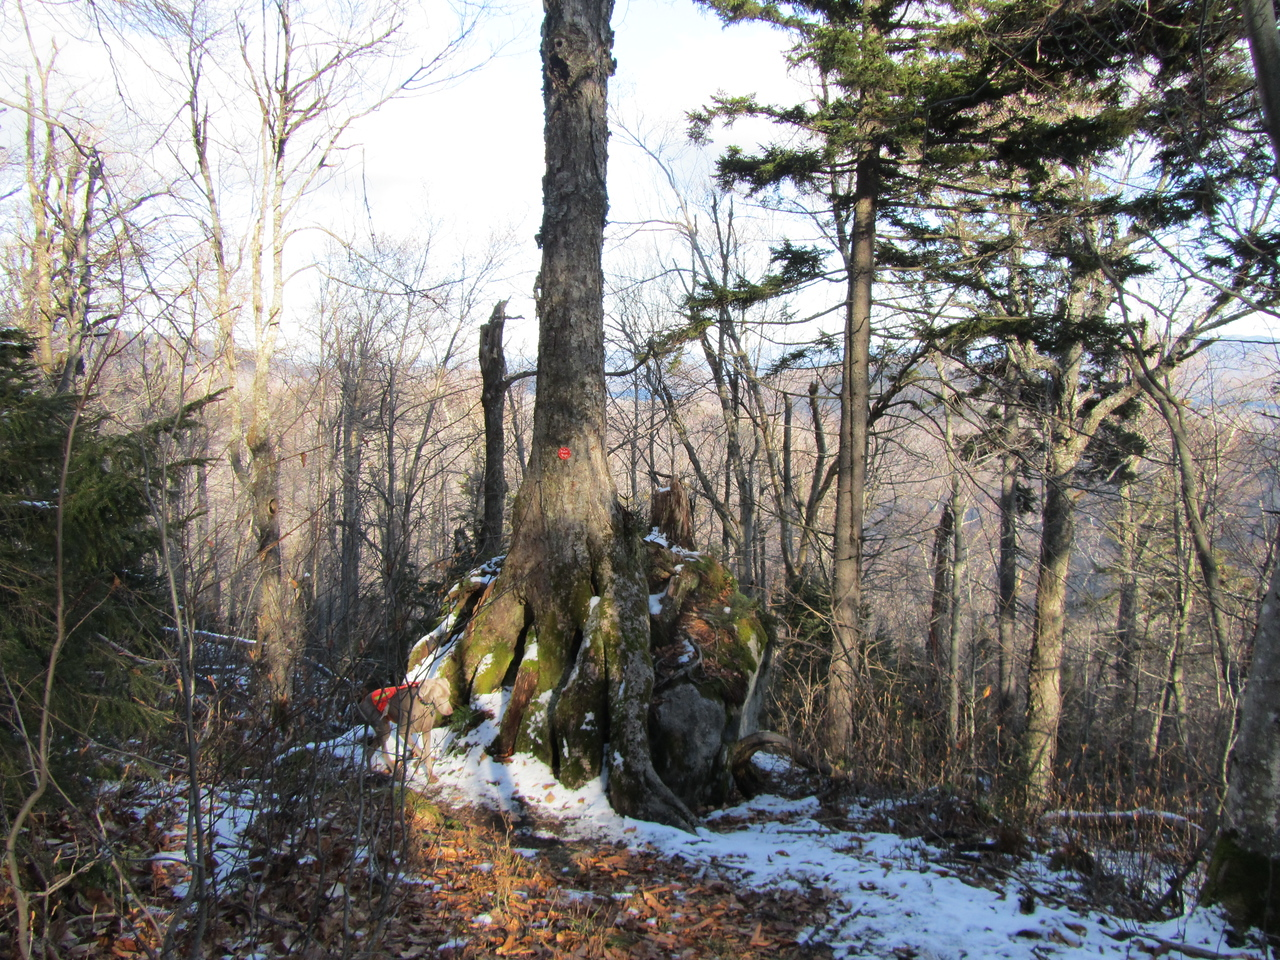 Heading back down and found this interesting tree completely eating a boulder.